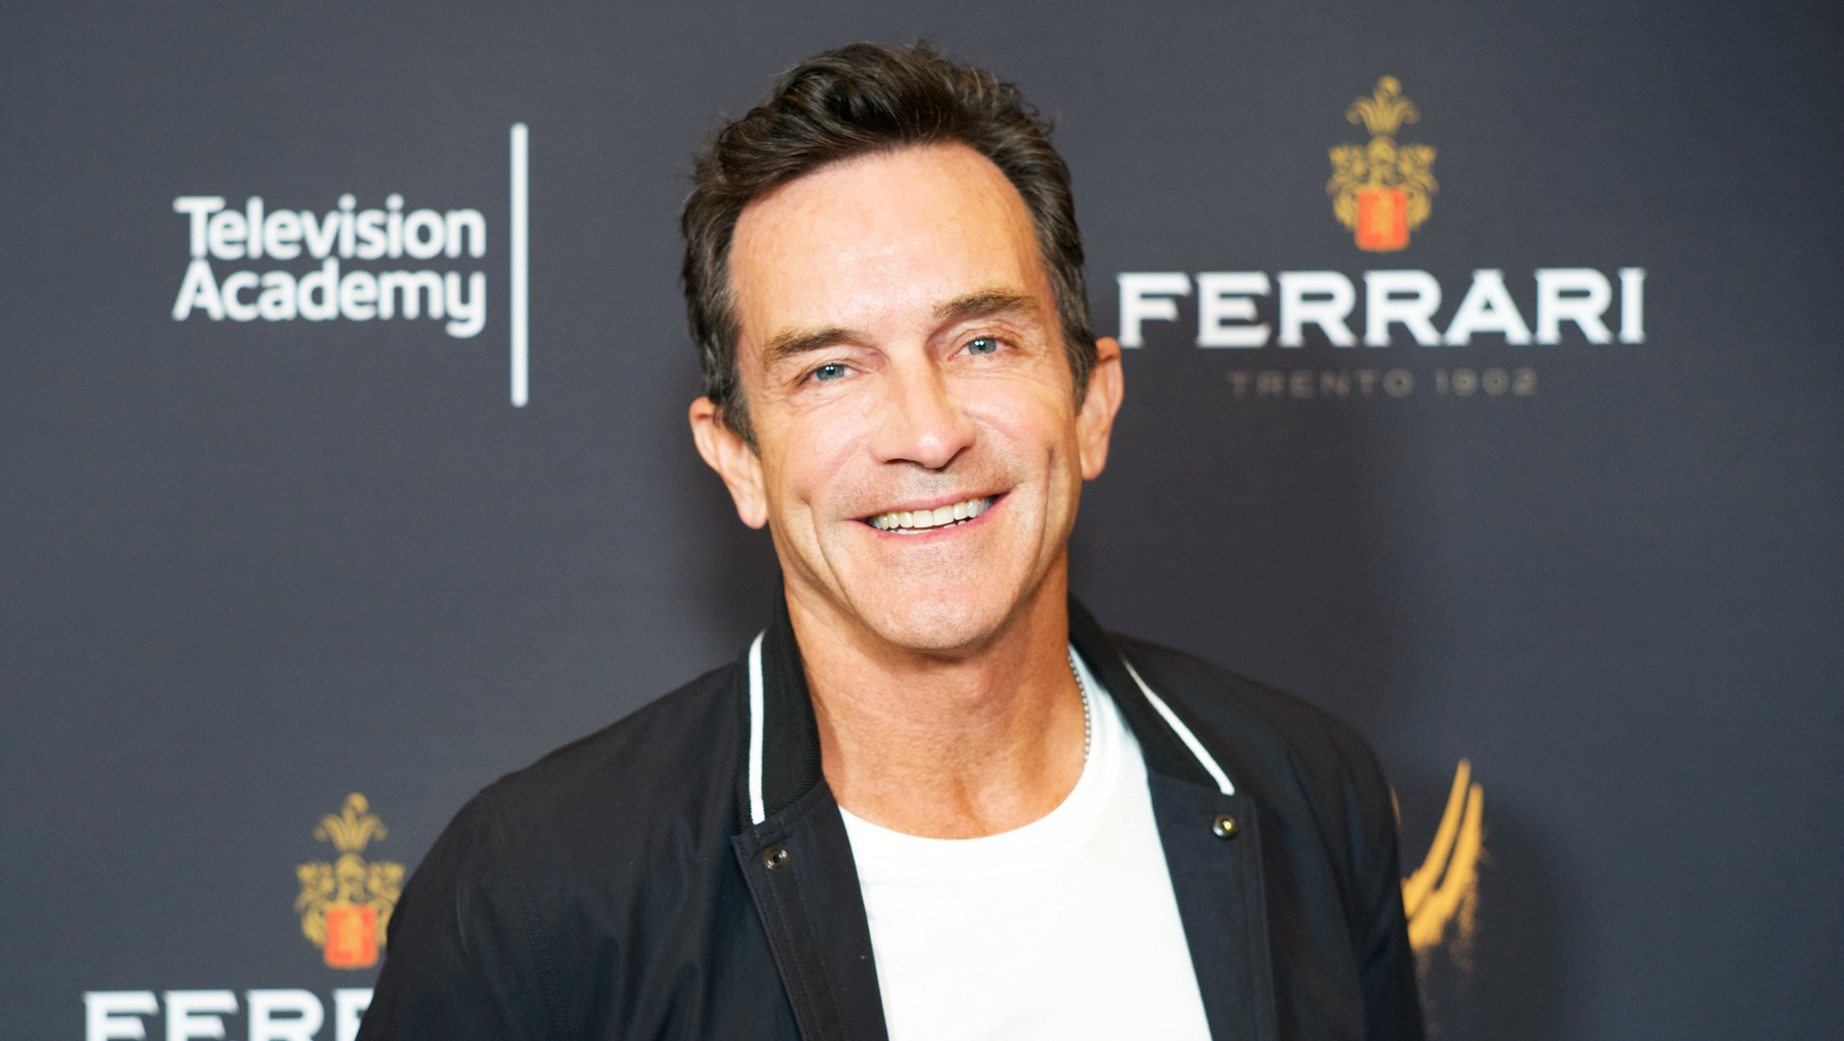 Jeff Probst Explains Why 'Survivor' Will 'Never' Have an All-Winners Season